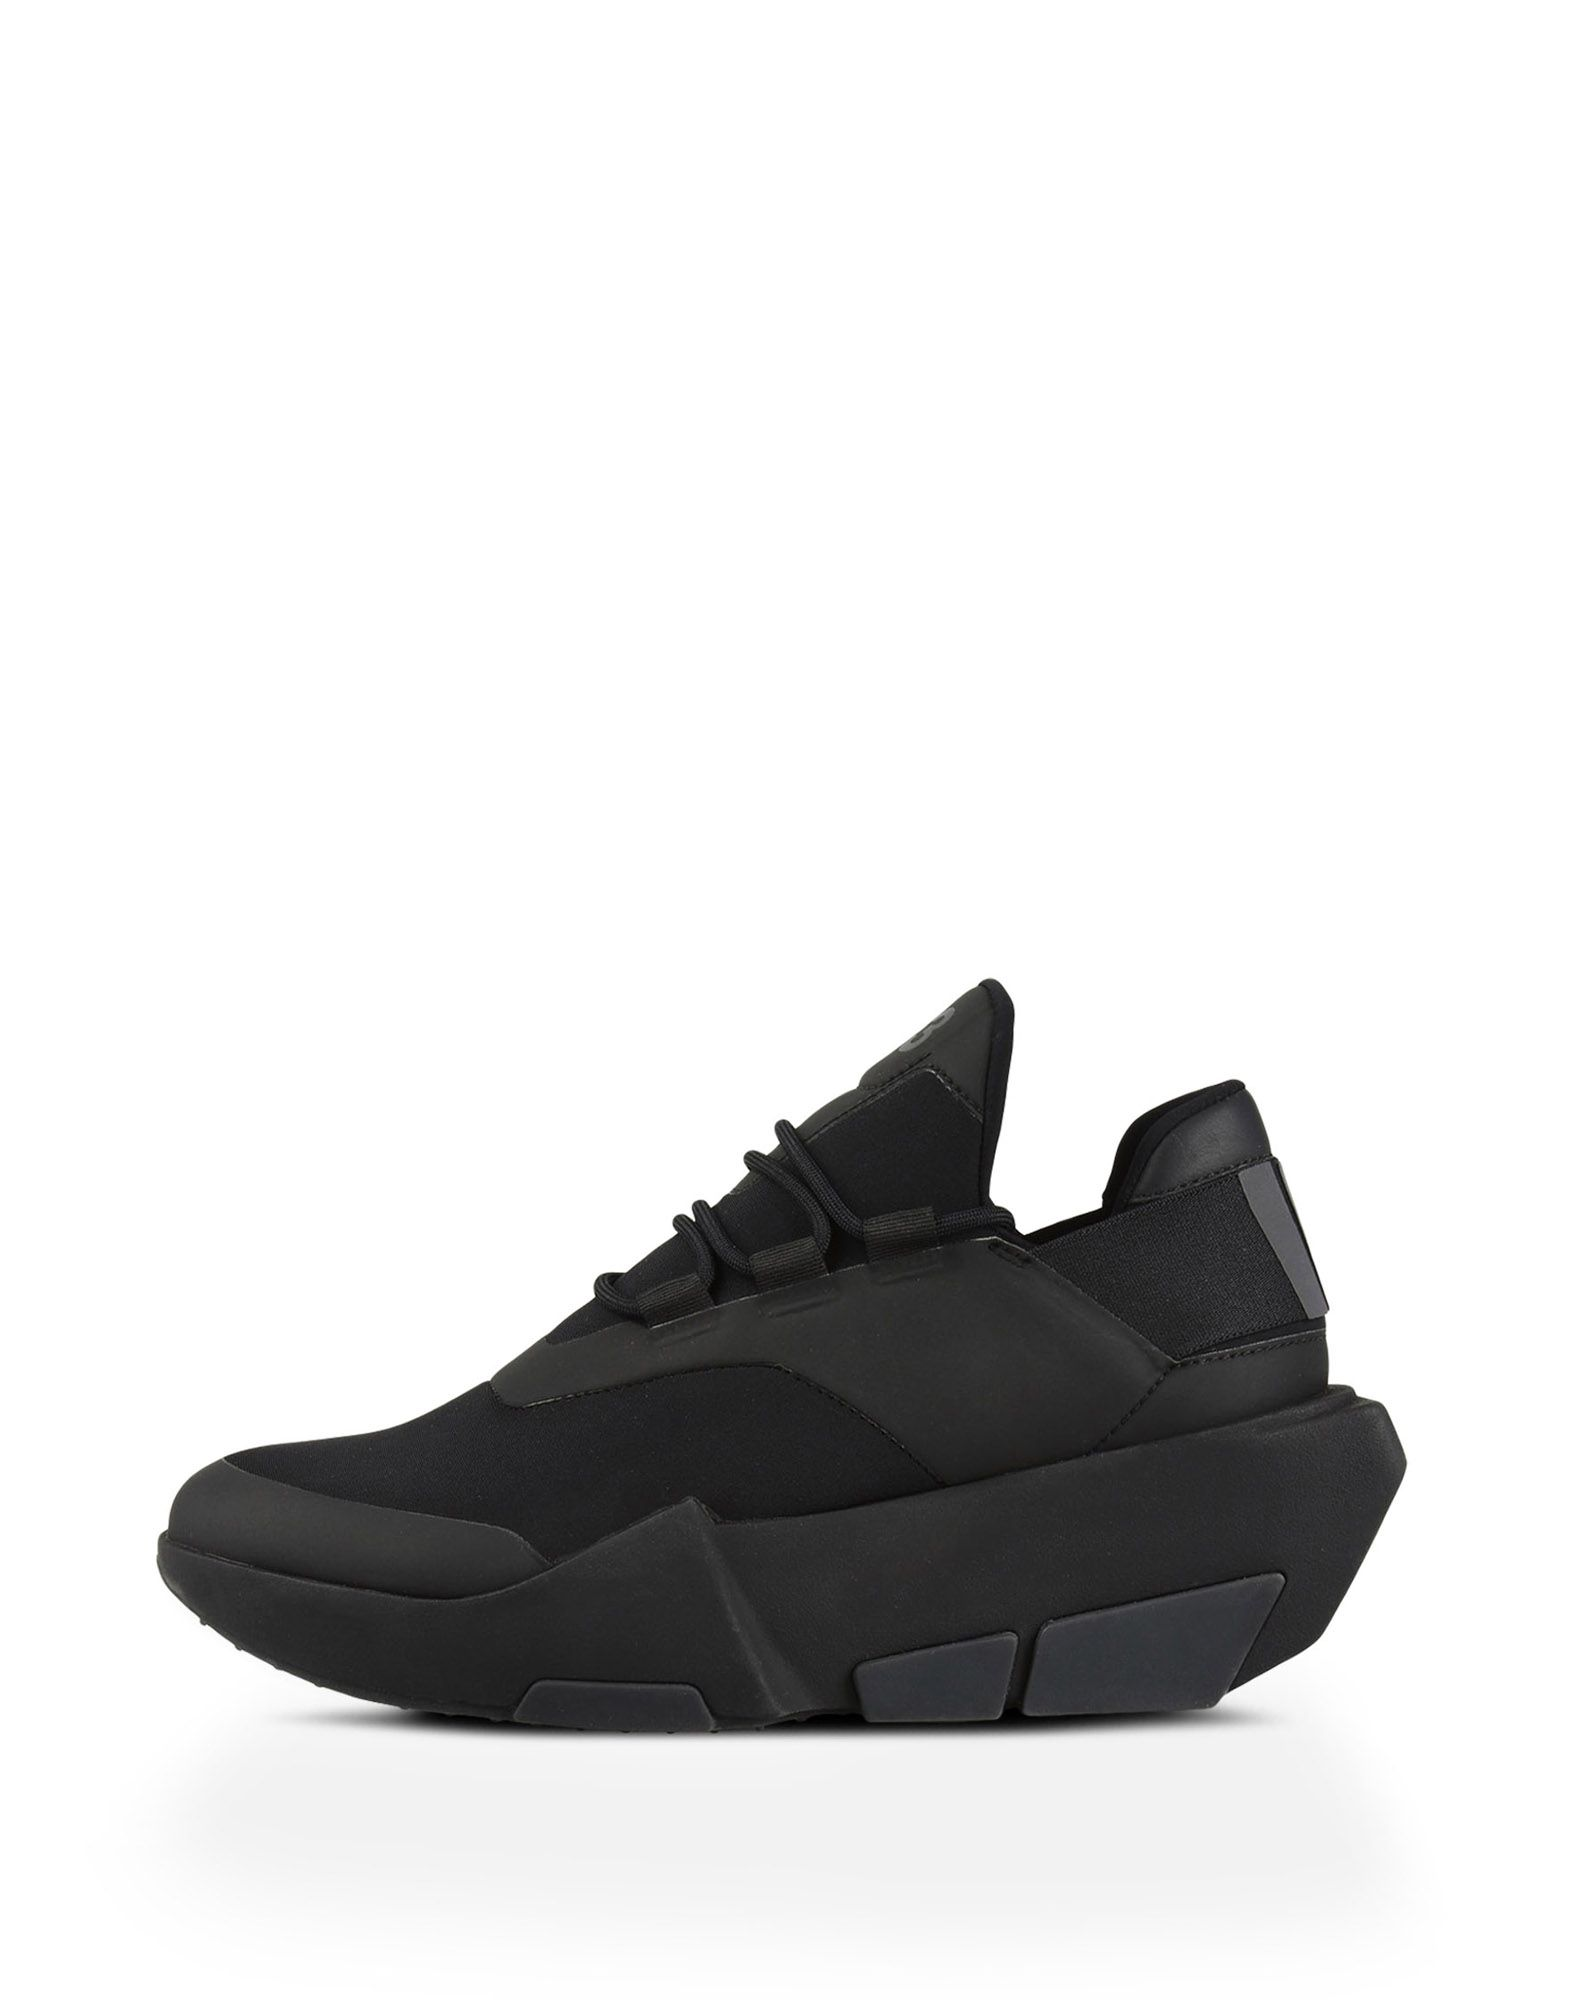 1571x2000 Y 3 Mira Sneaker For Women Adidas Y 3 Official Store